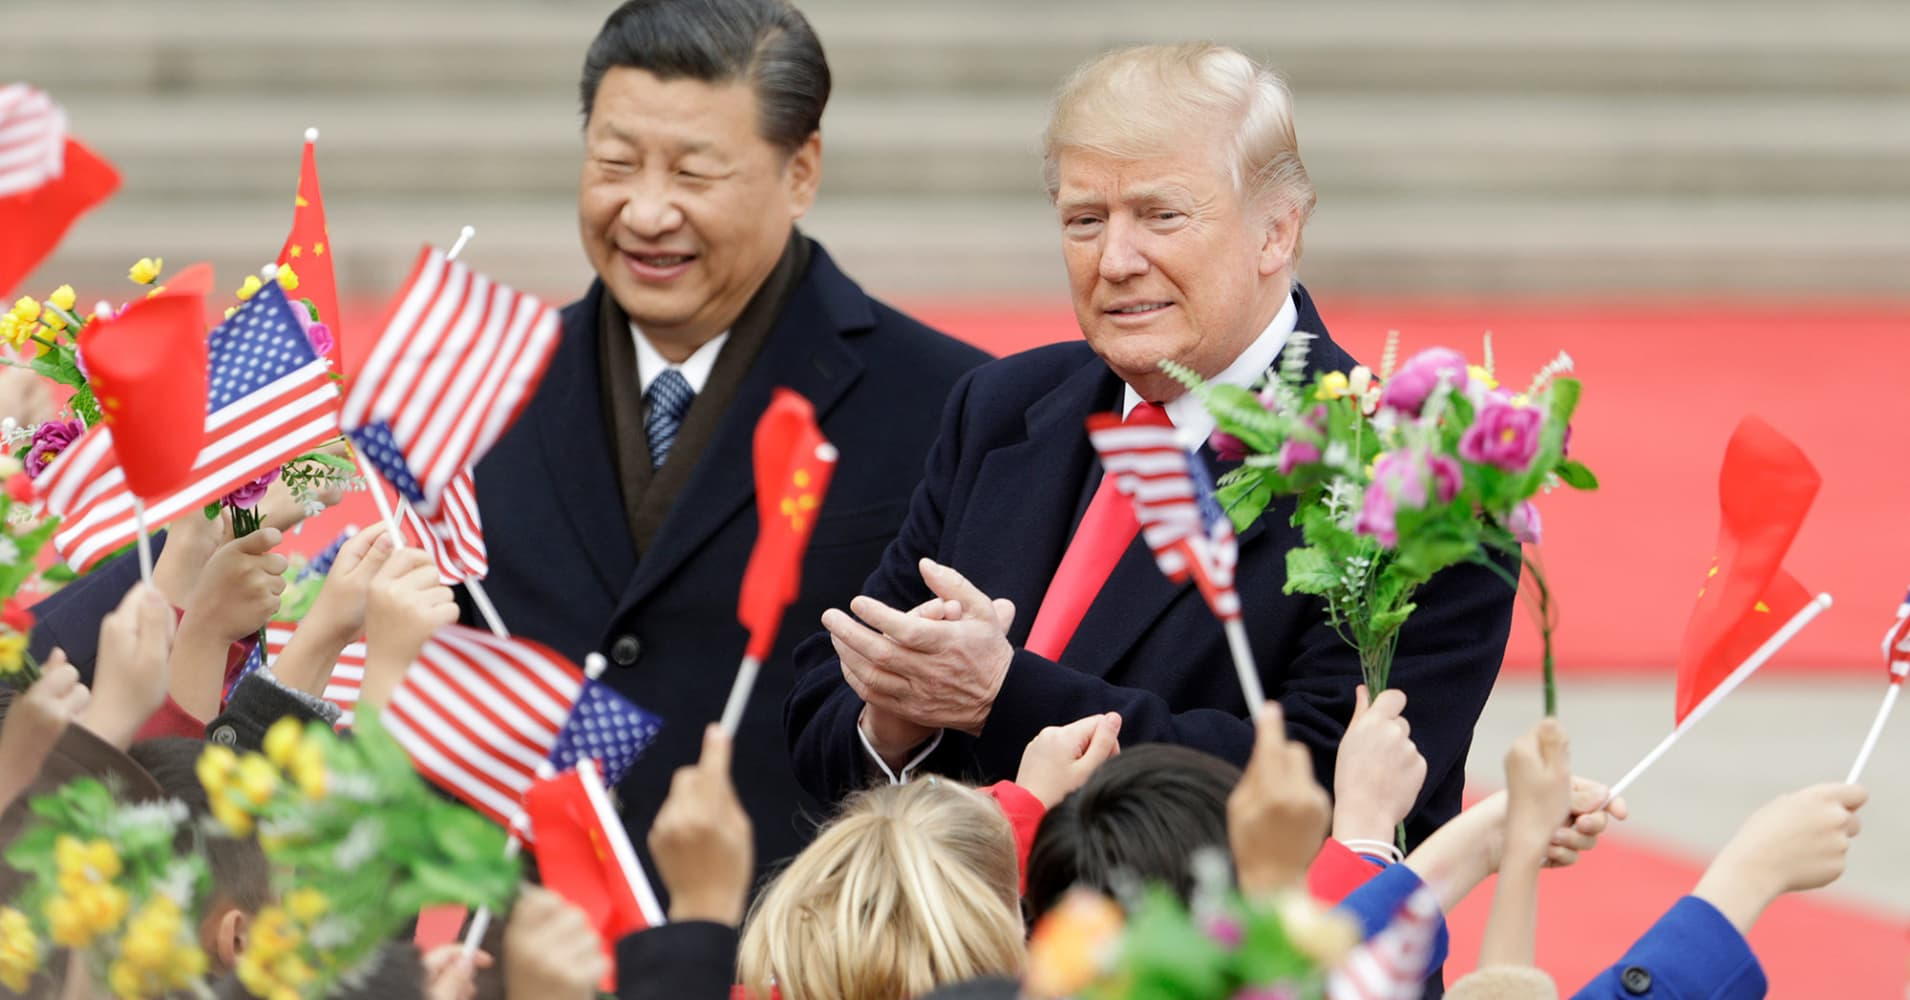 Xi Jinping says cooperation is best for China and US at G-20 meeting with Trump